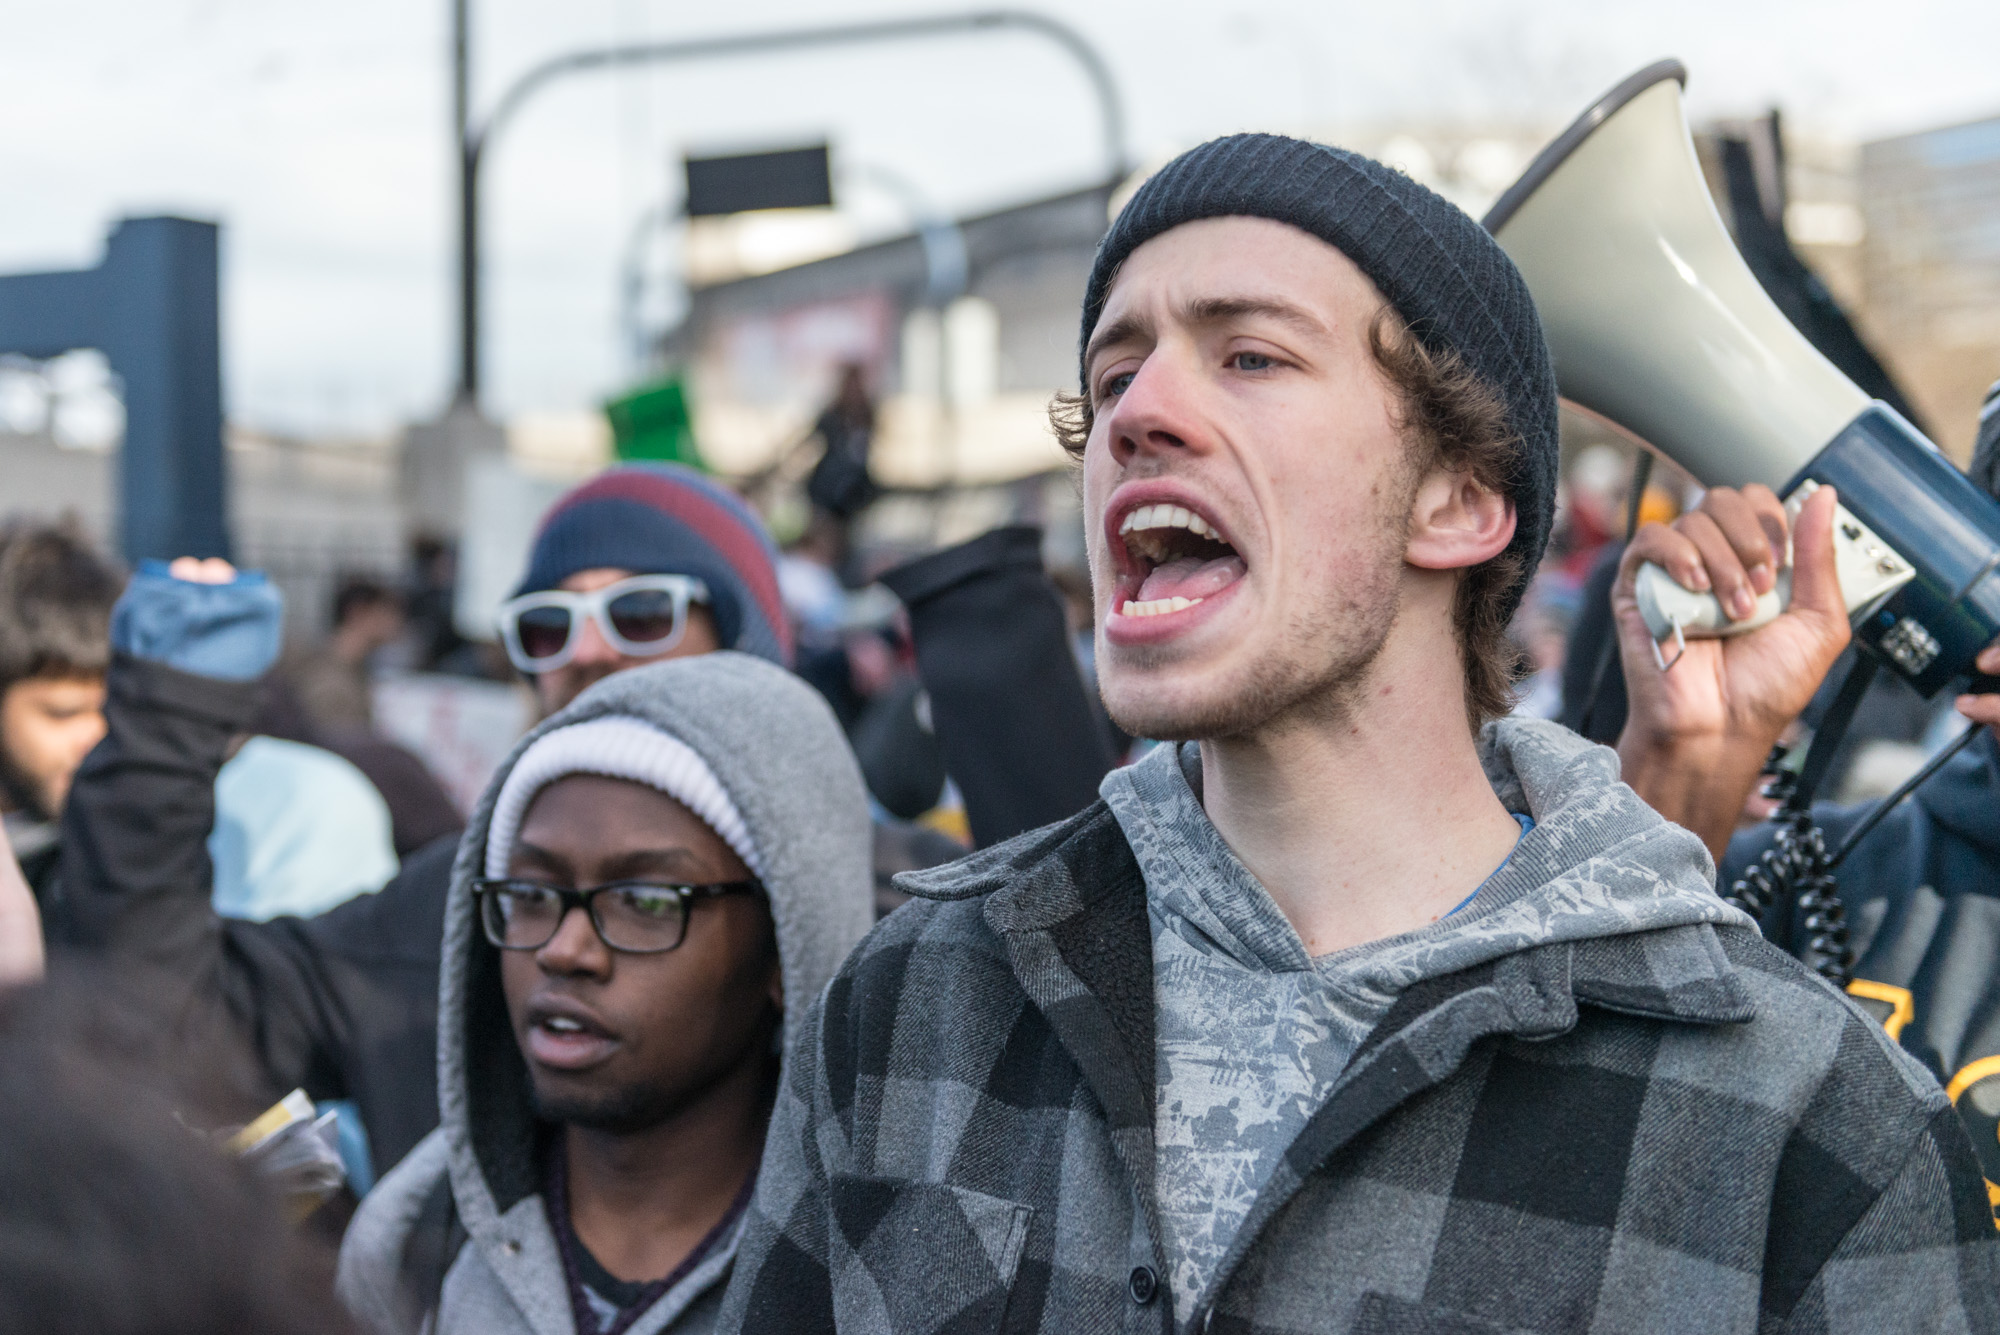 """Protester in front of the police fences yelling """"Who do you protect, who do you serve!"""""""